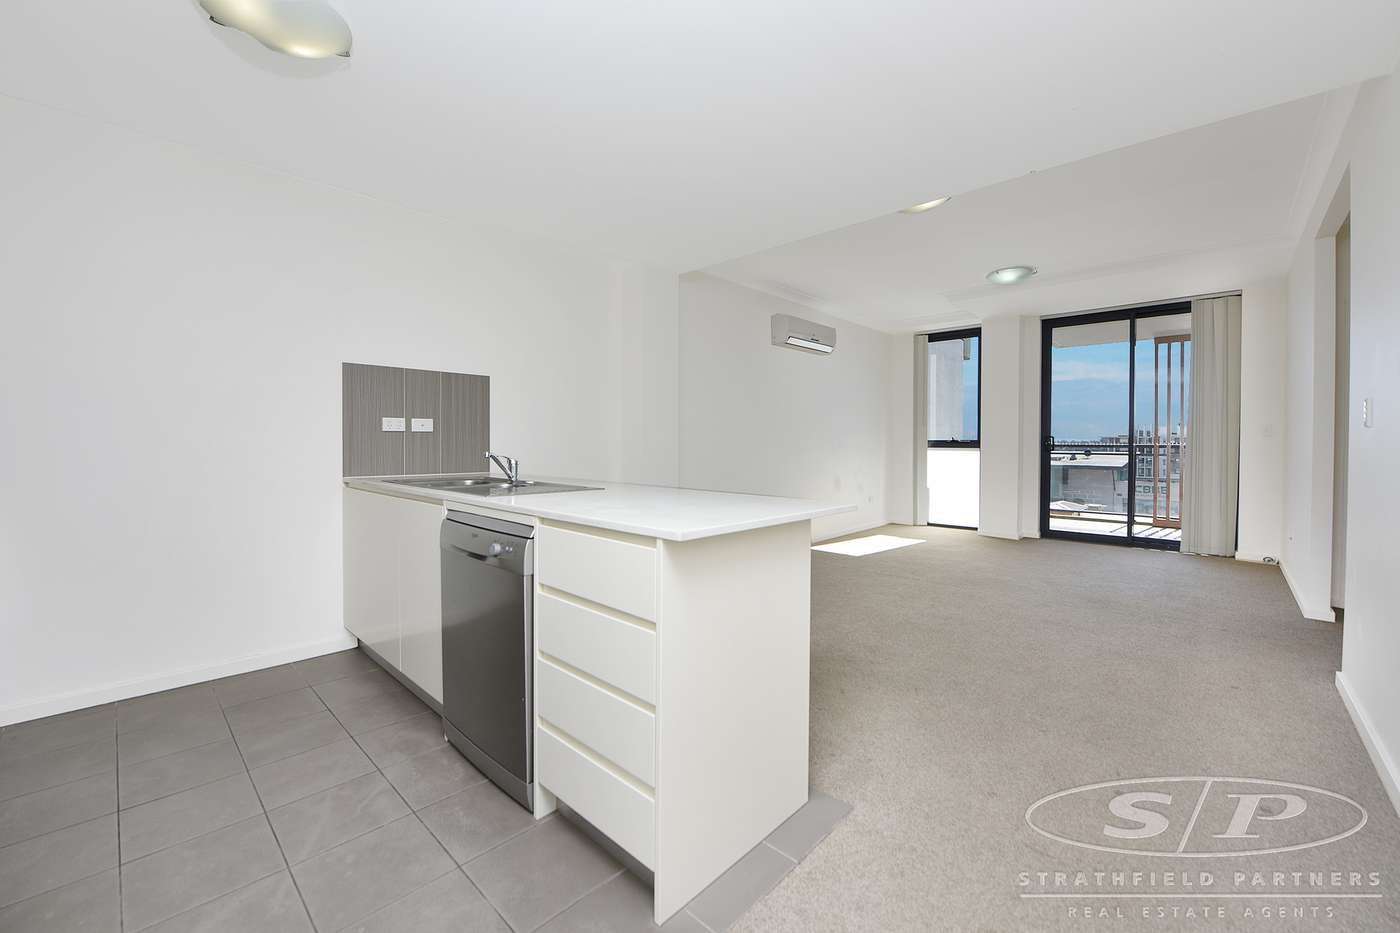 Main view of Homely apartment listing, 116/69A-71 Elizabeth Street, Liverpool, NSW 2170